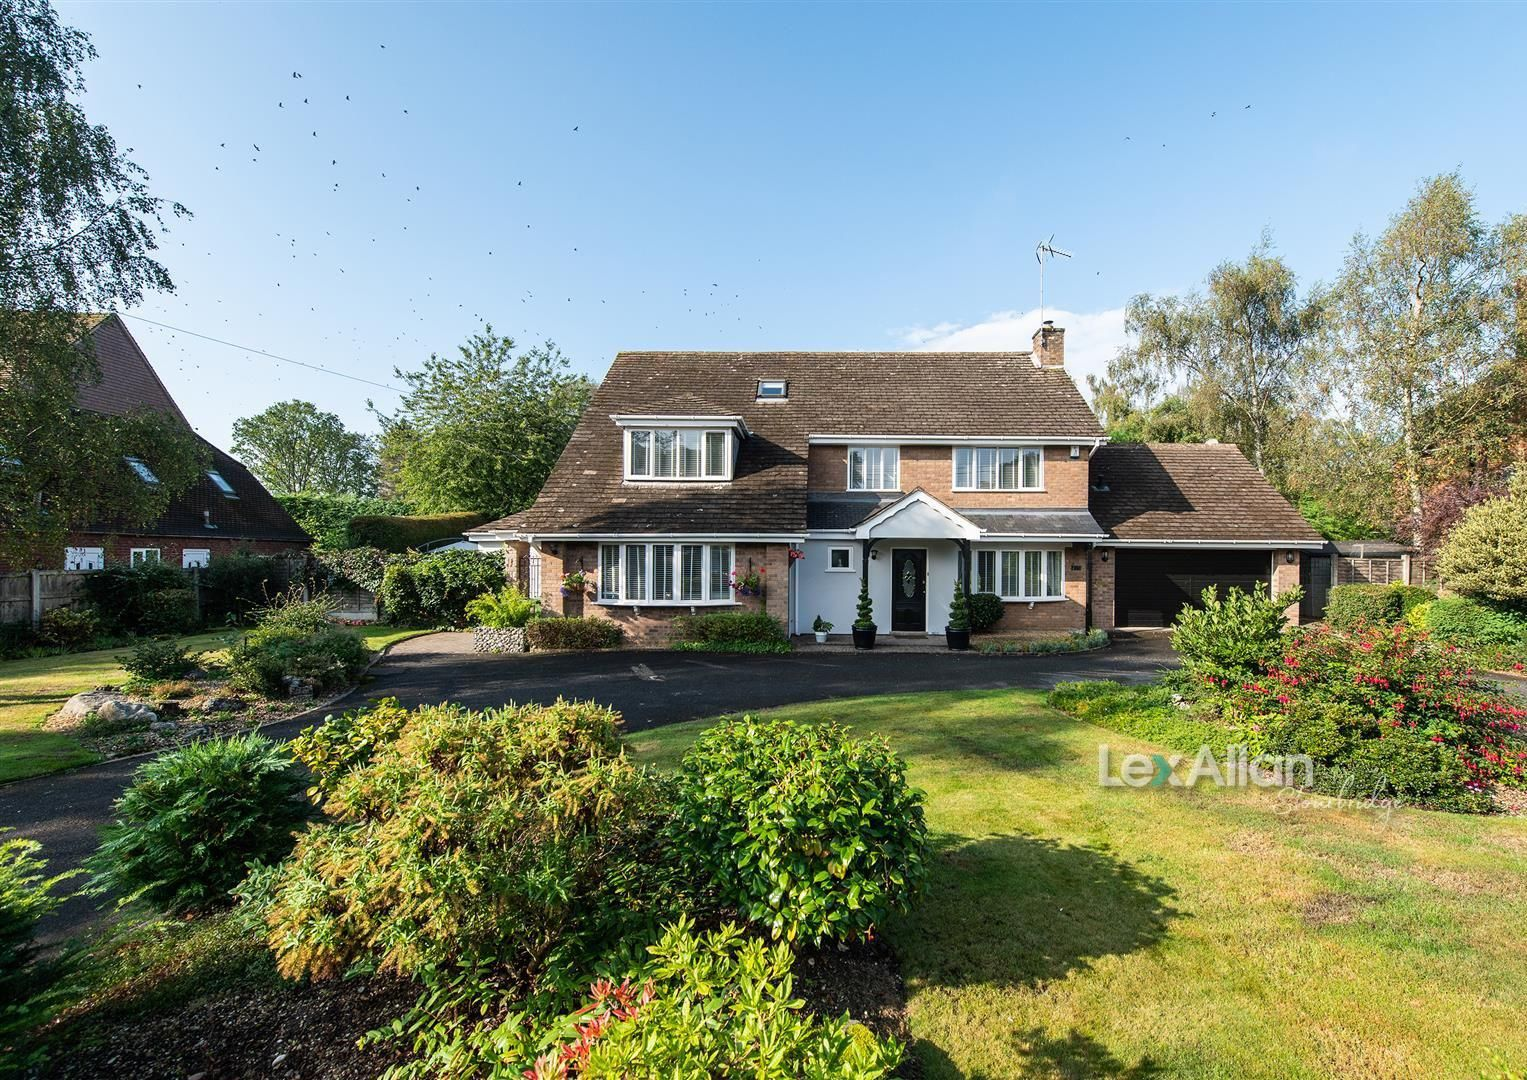 5 bed house for sale, DY7